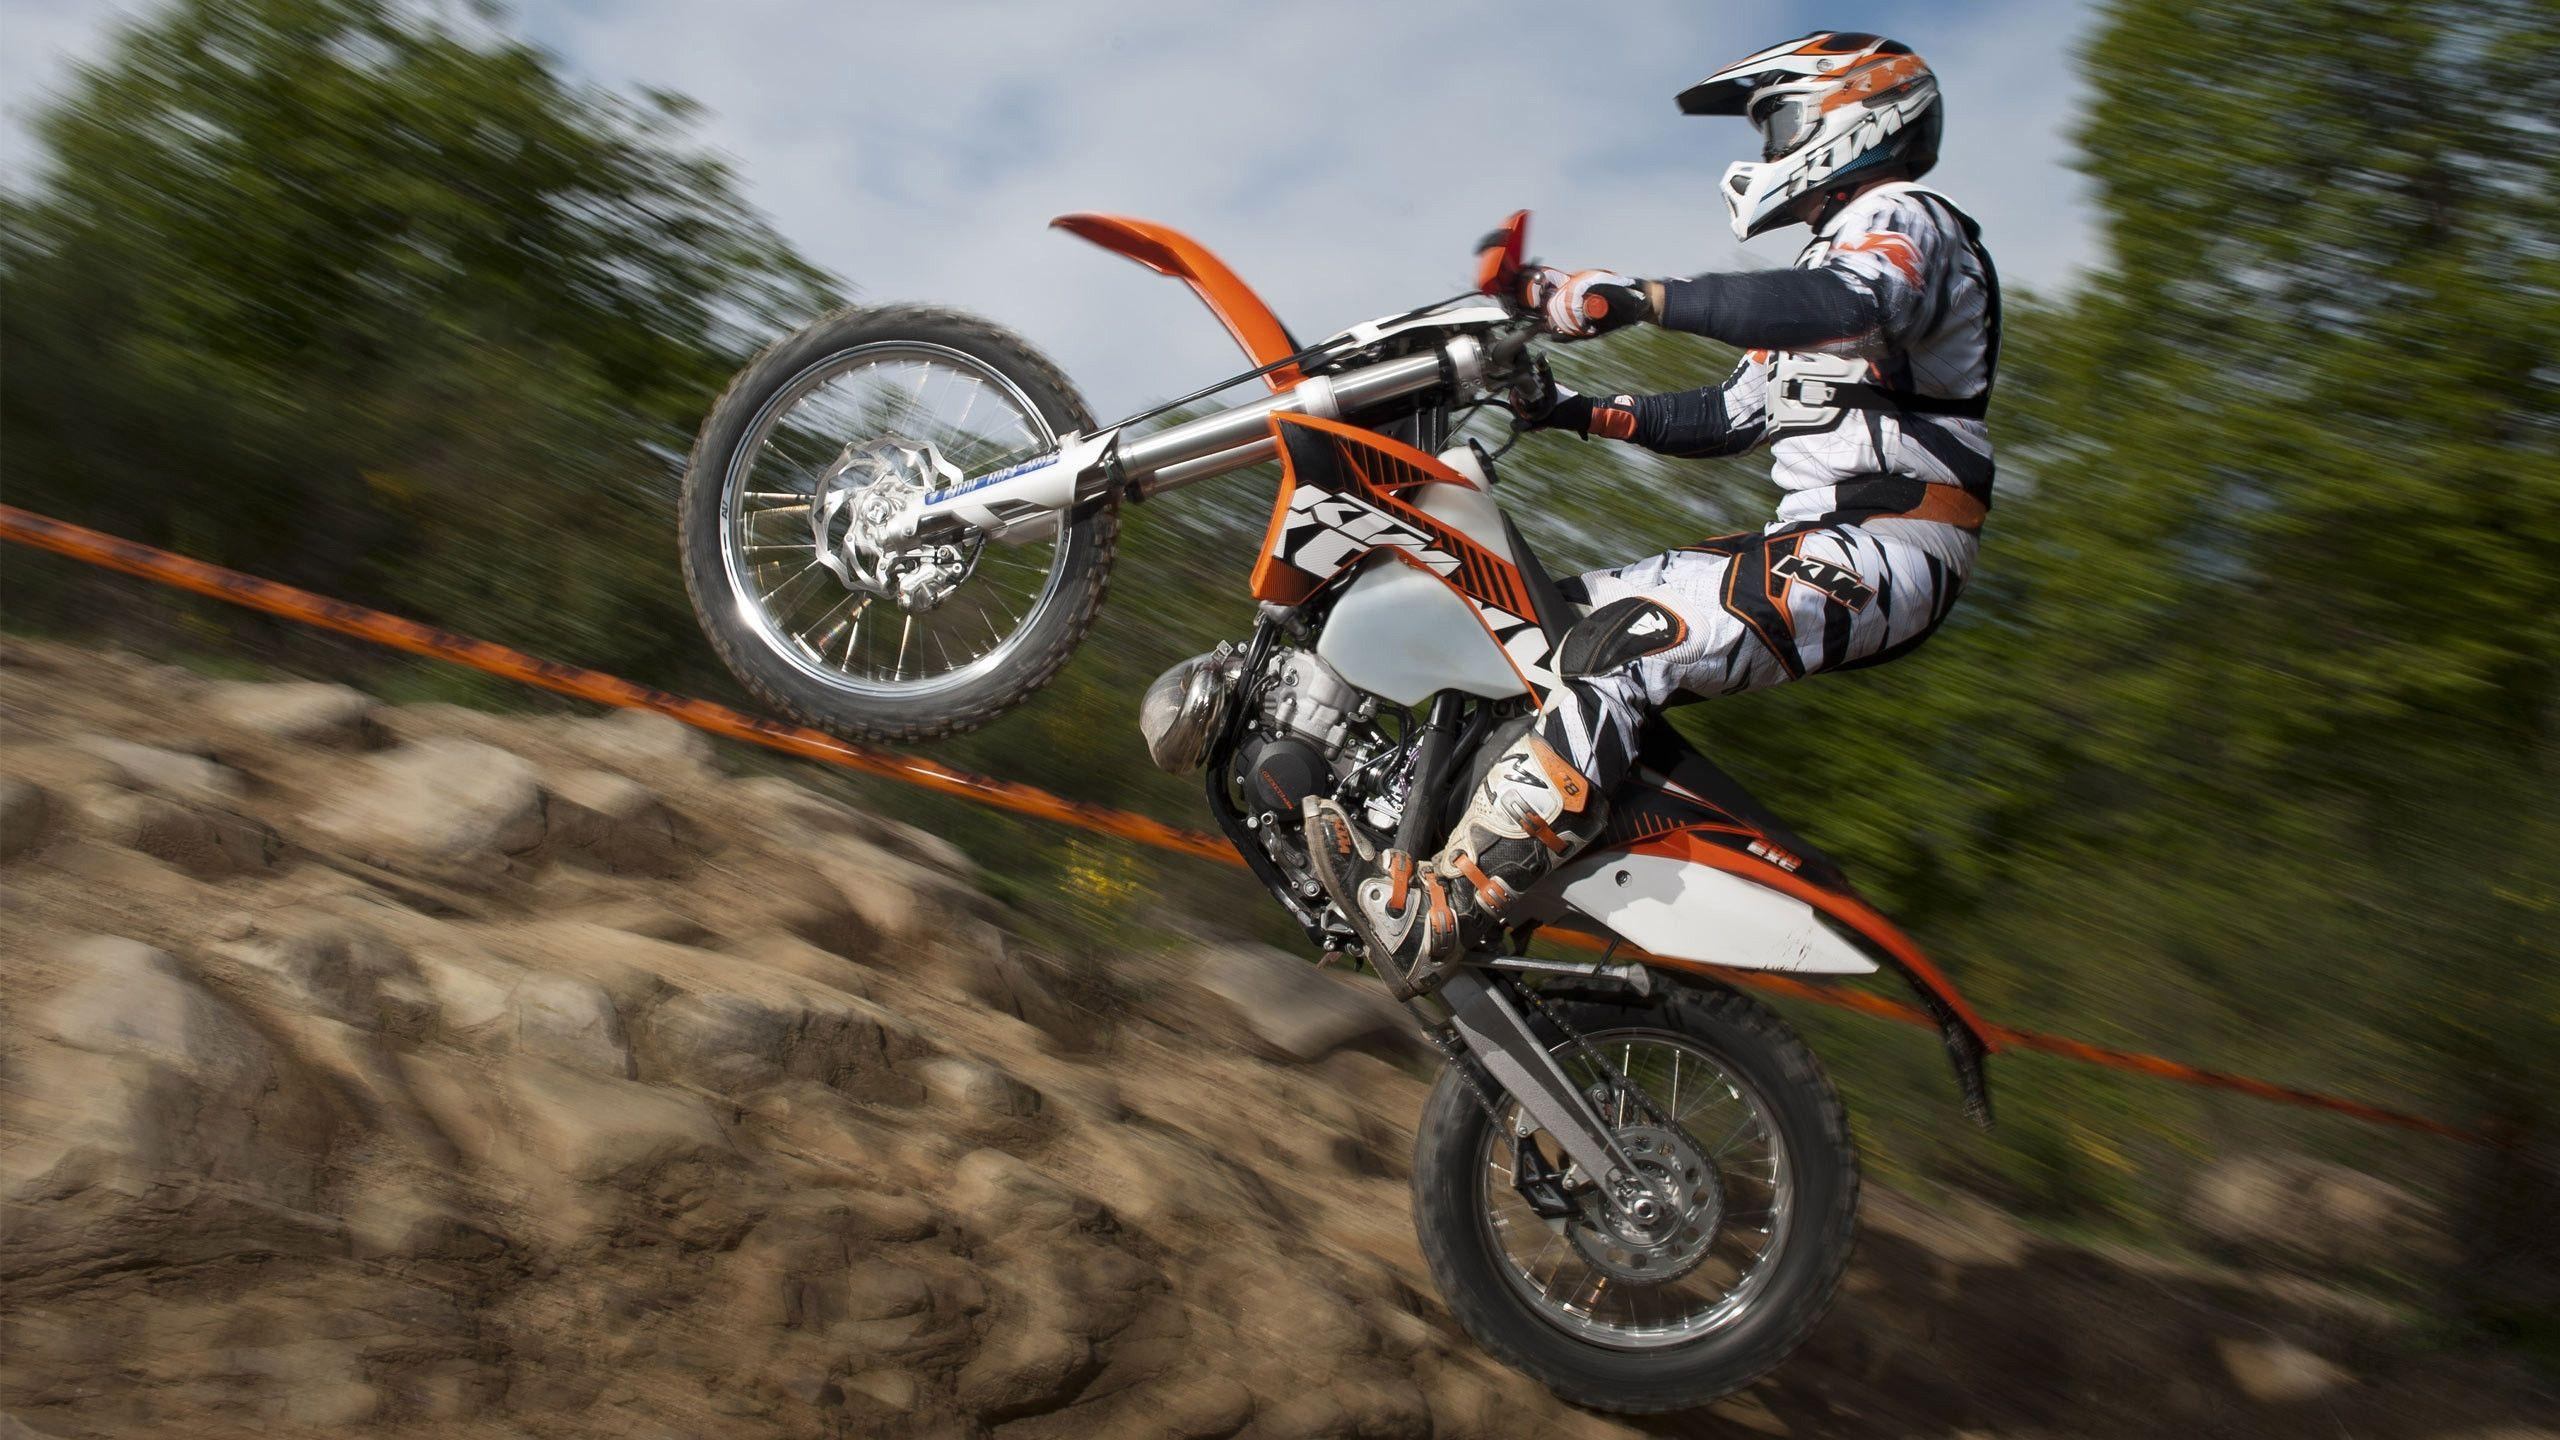 Wallpapers Motocross KTM Wallpaper Cave